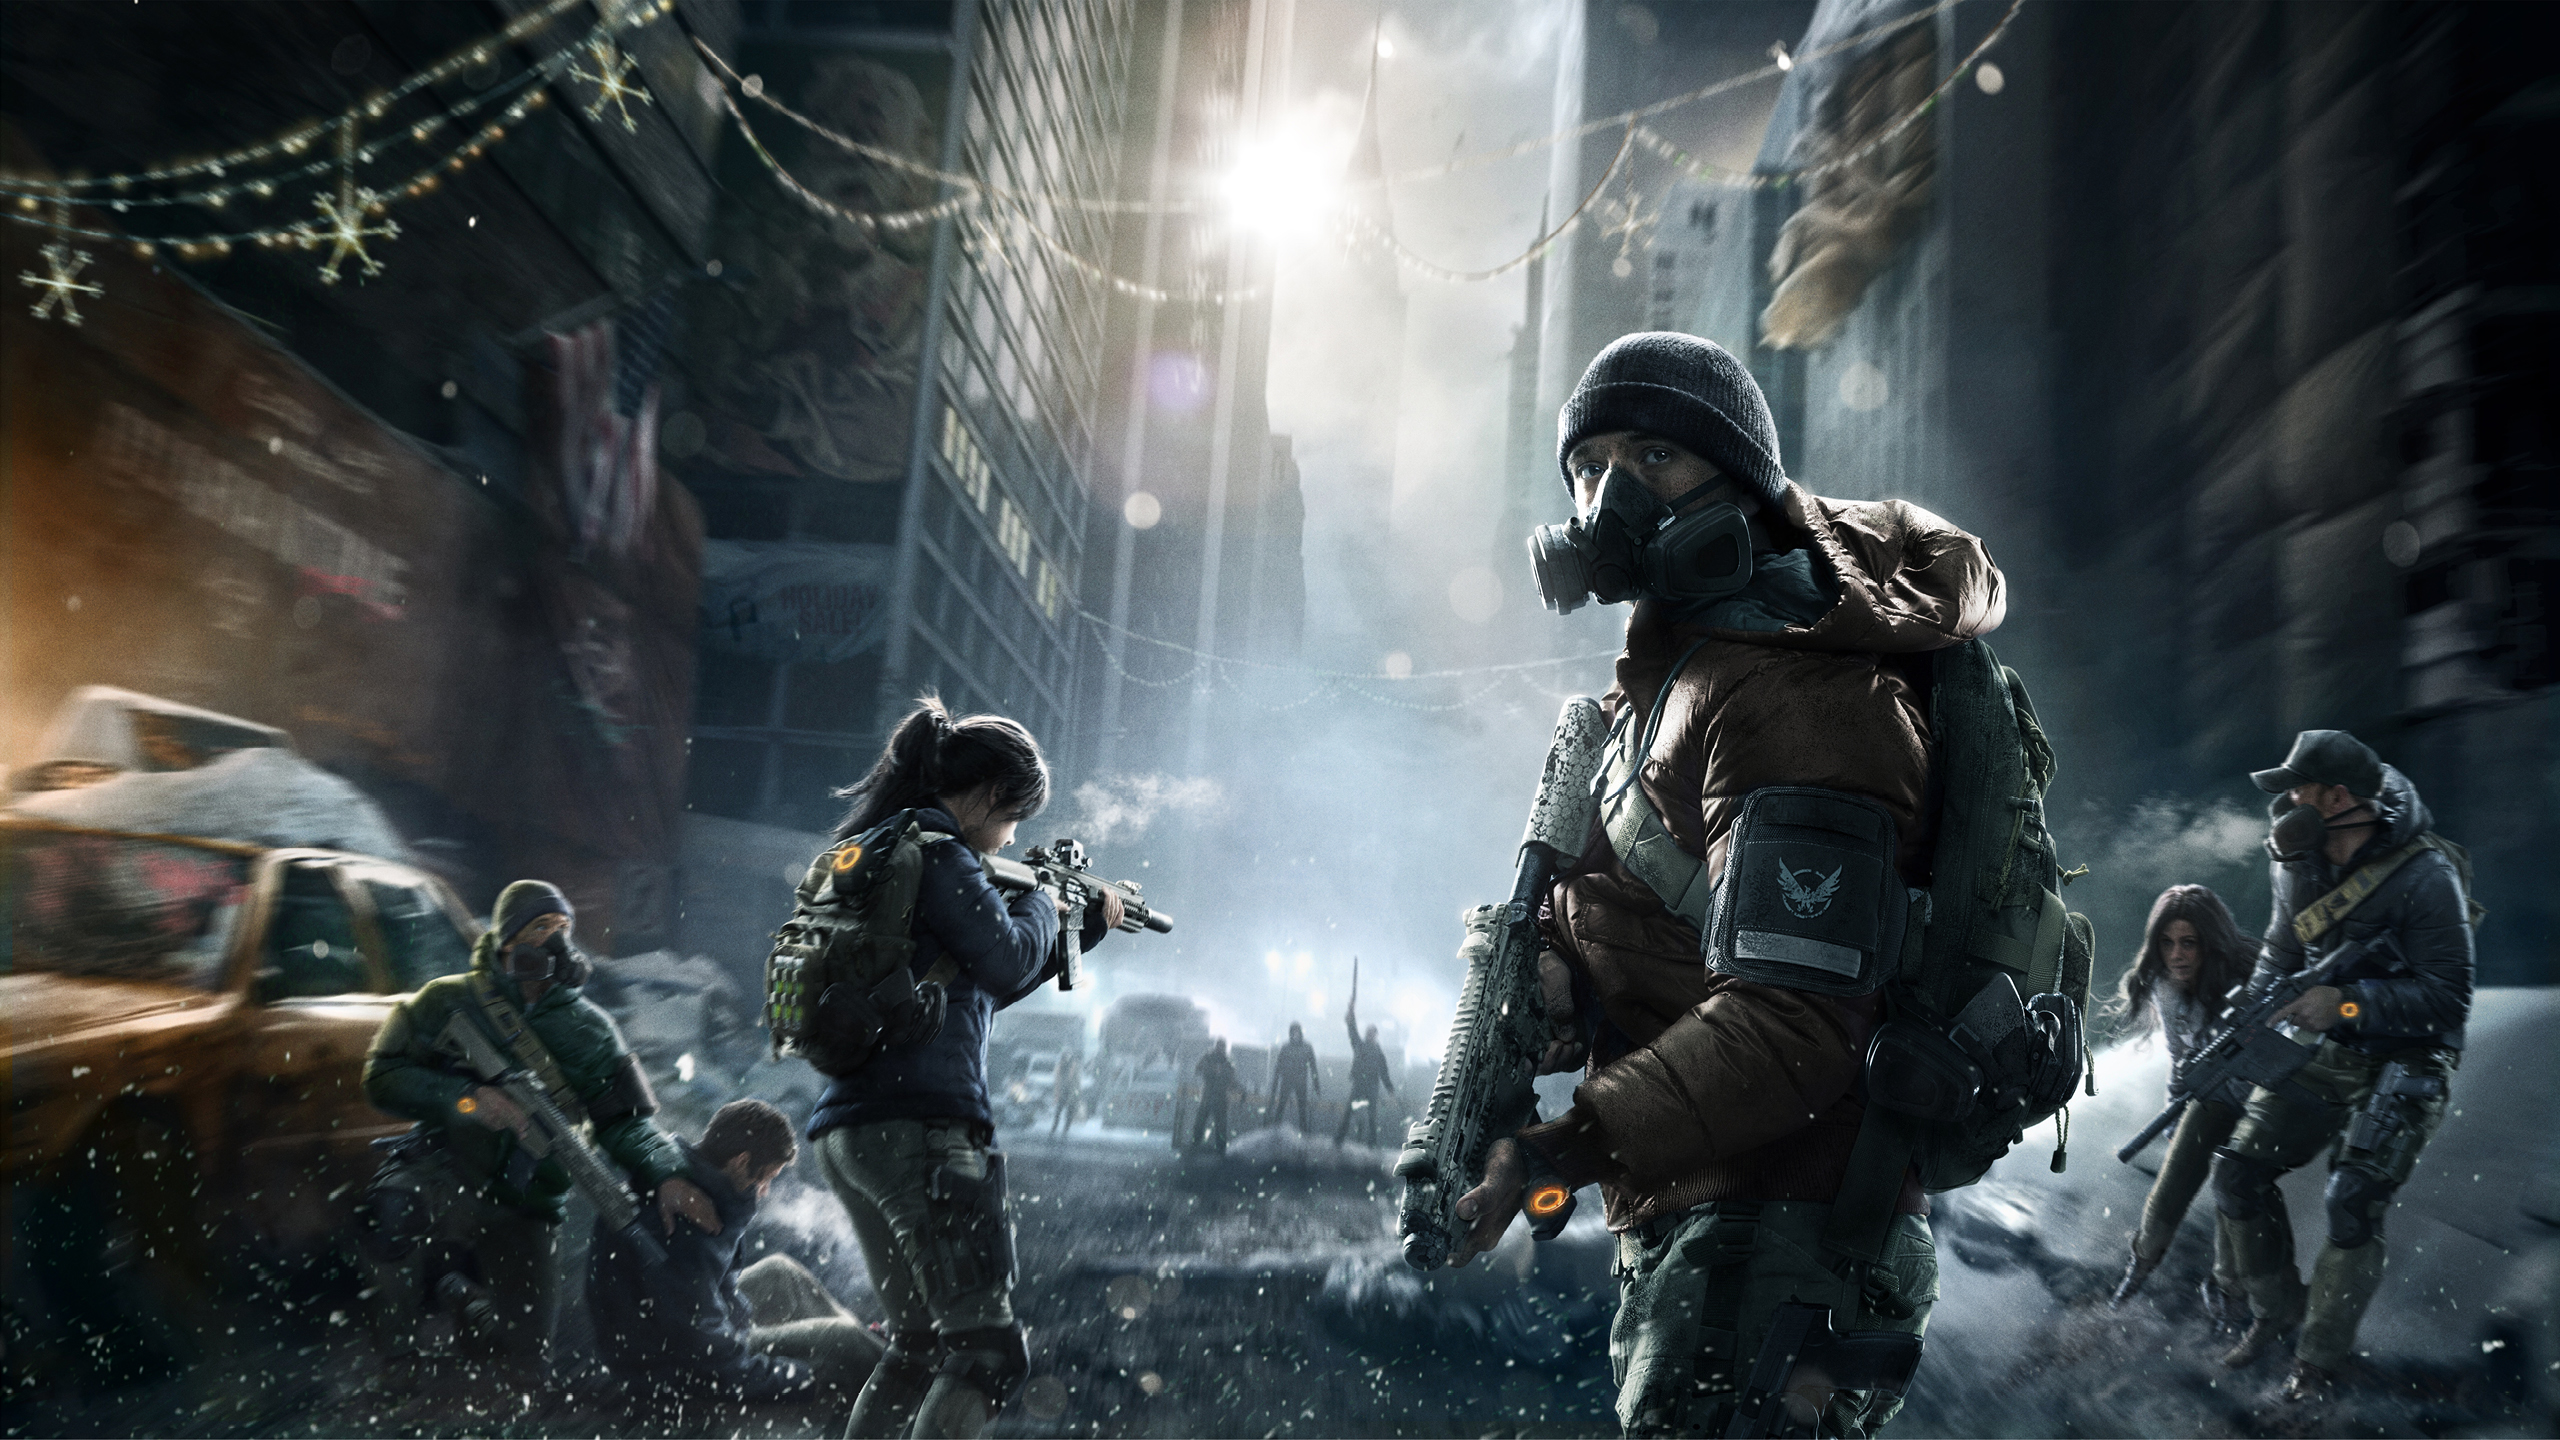 Tom Clancys The Division New York Wallpapers HD Wallpapers 2560x1440